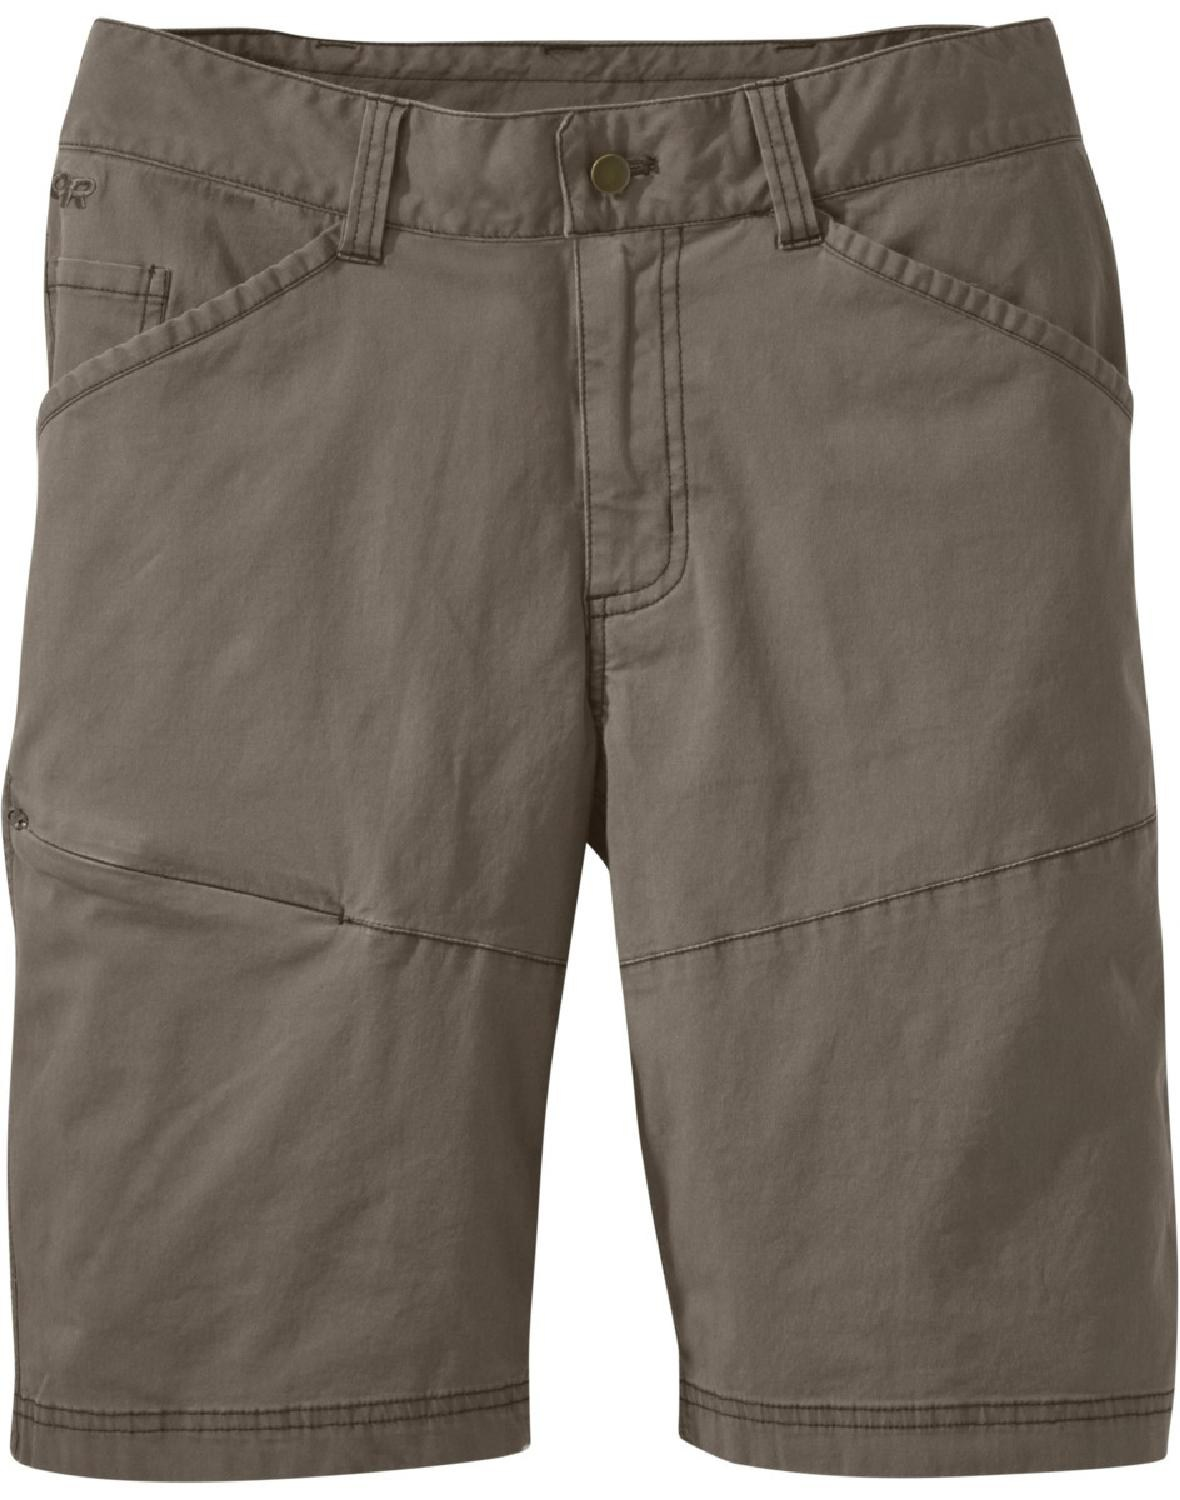 Outdoor Research Wadi Rum Shorts - Men's